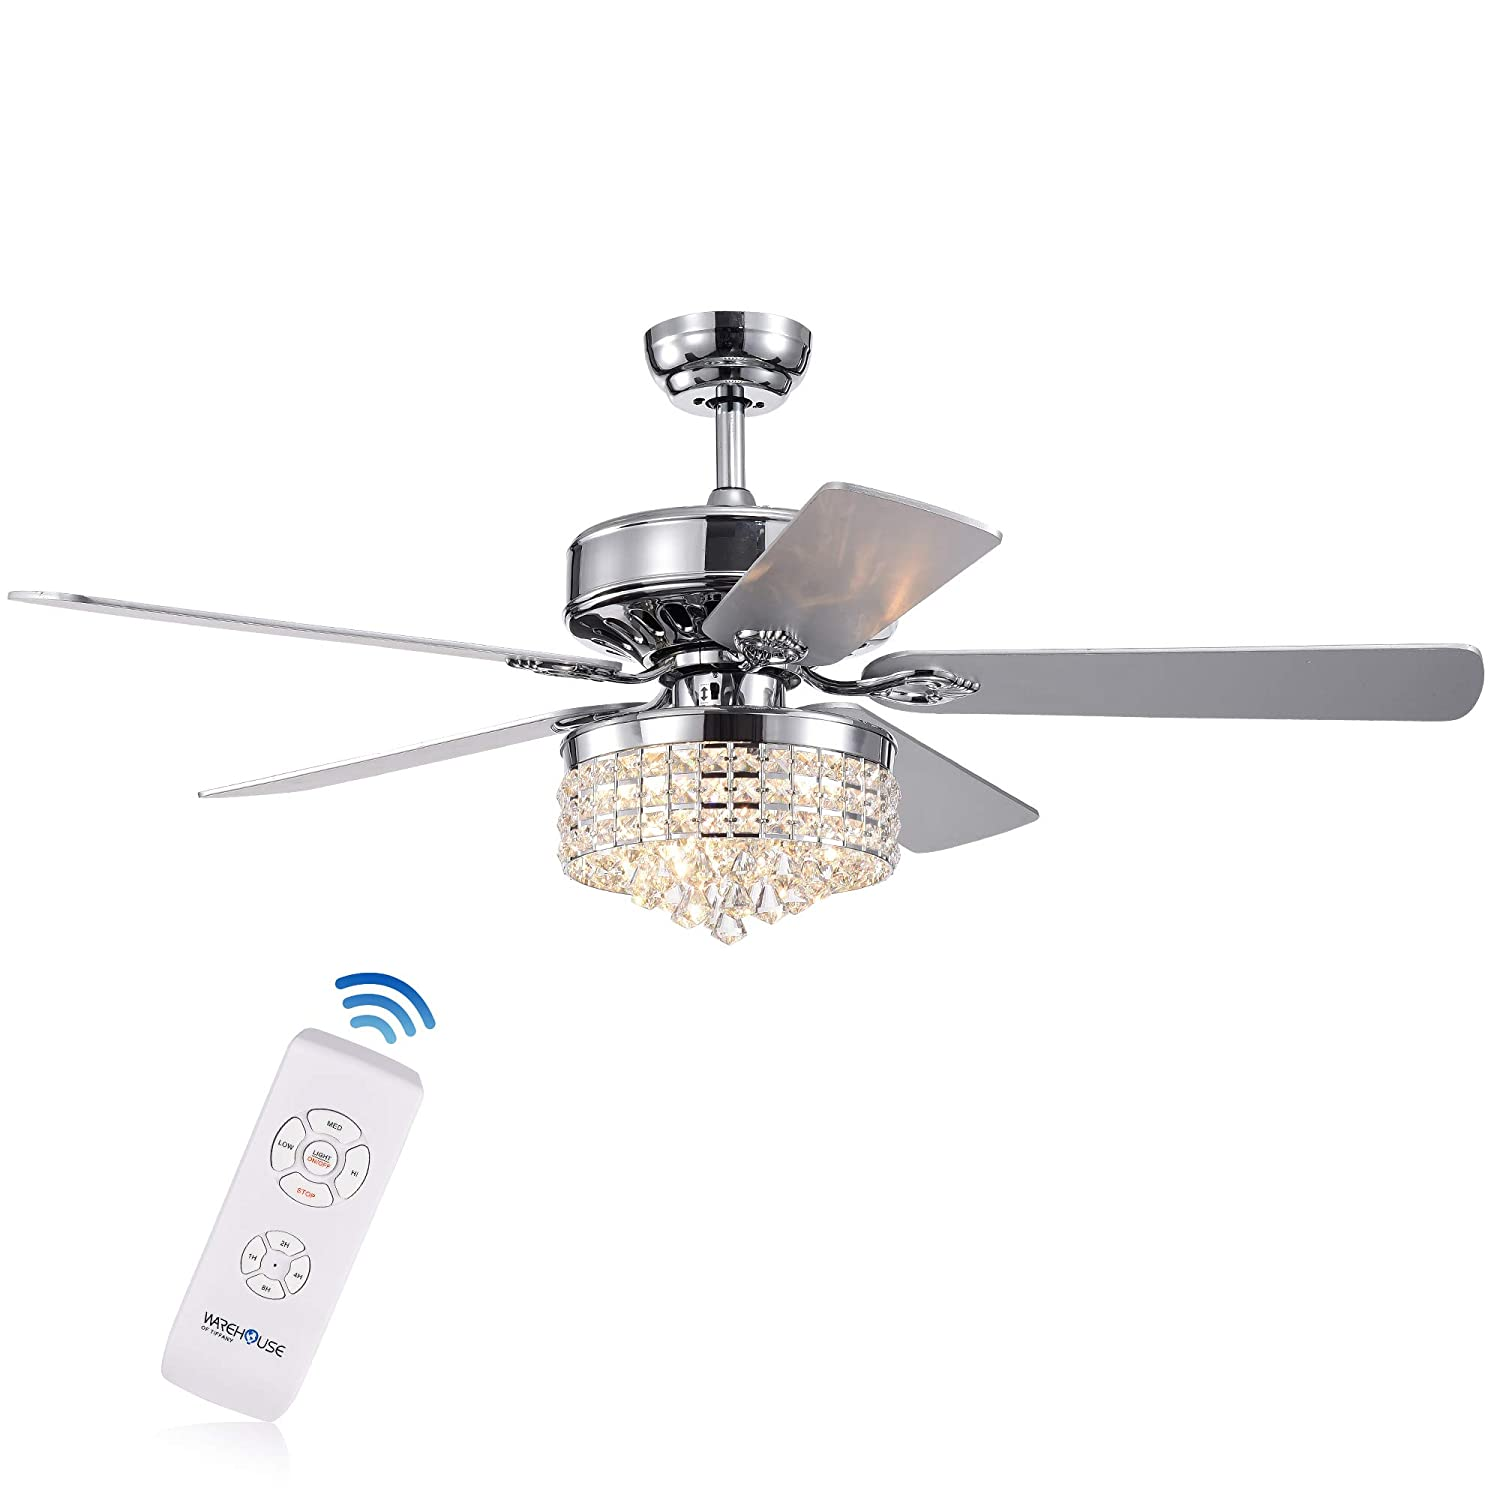 Warehouse of Tiffany CFL-8358REMO CH Letta 52-Inch 5-Blade Chrome Lighted Crystal Shade Remote Controlled Ceiling Fan